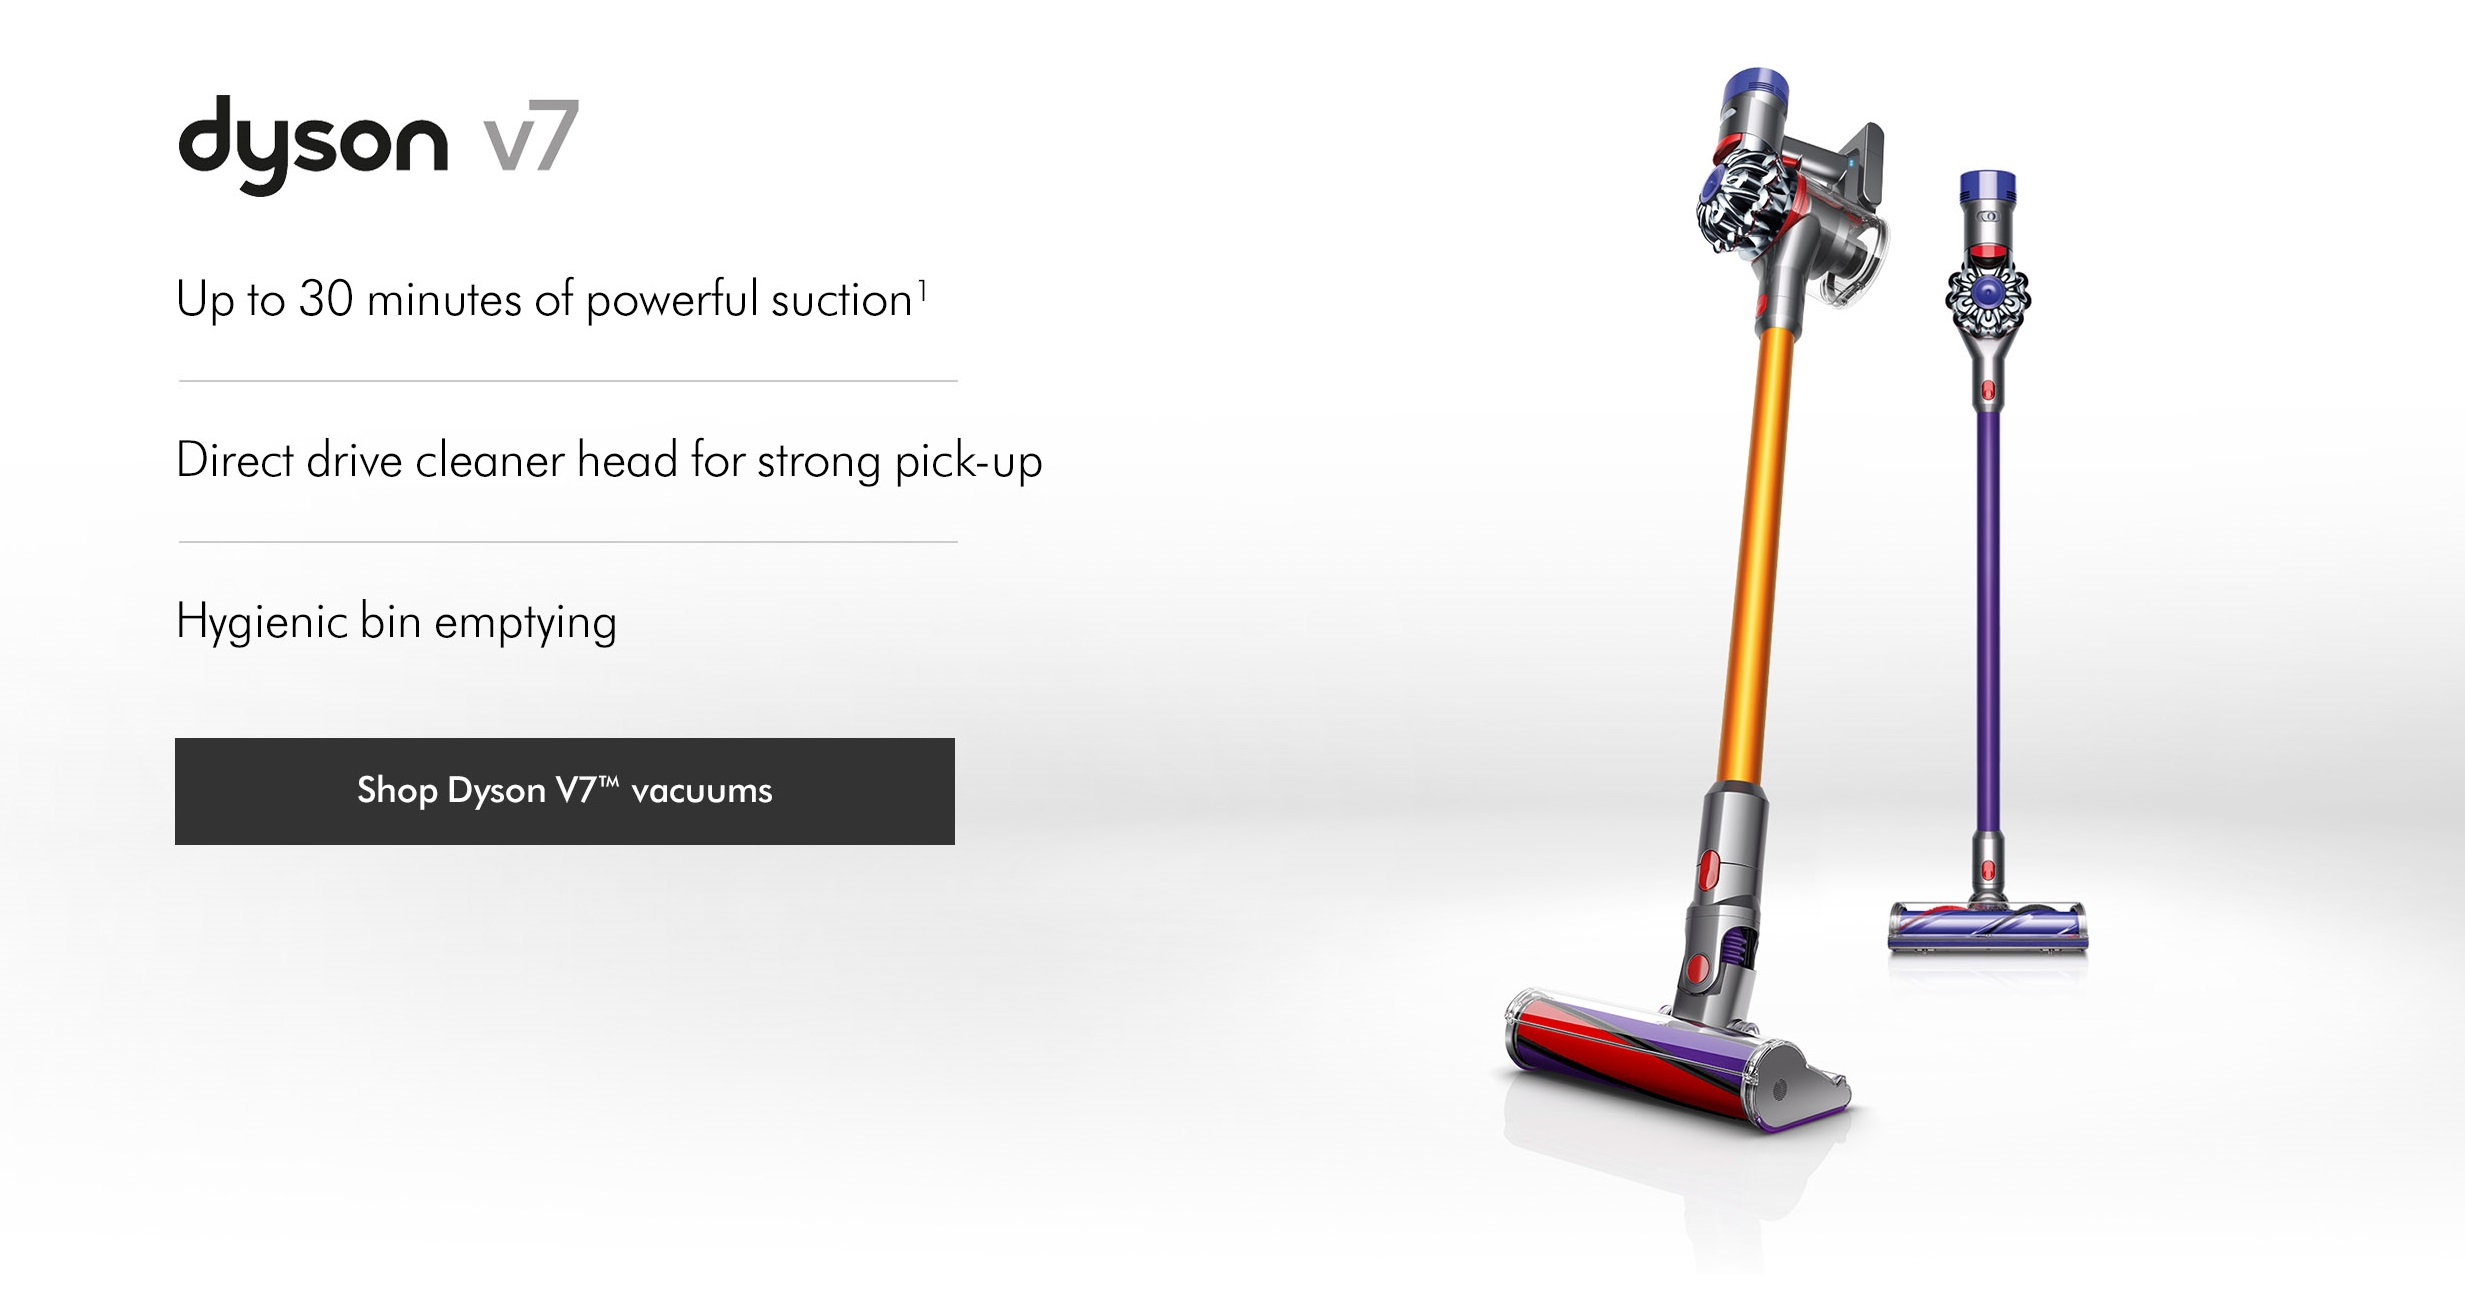 Dyson V7 Vacuum Cleaners